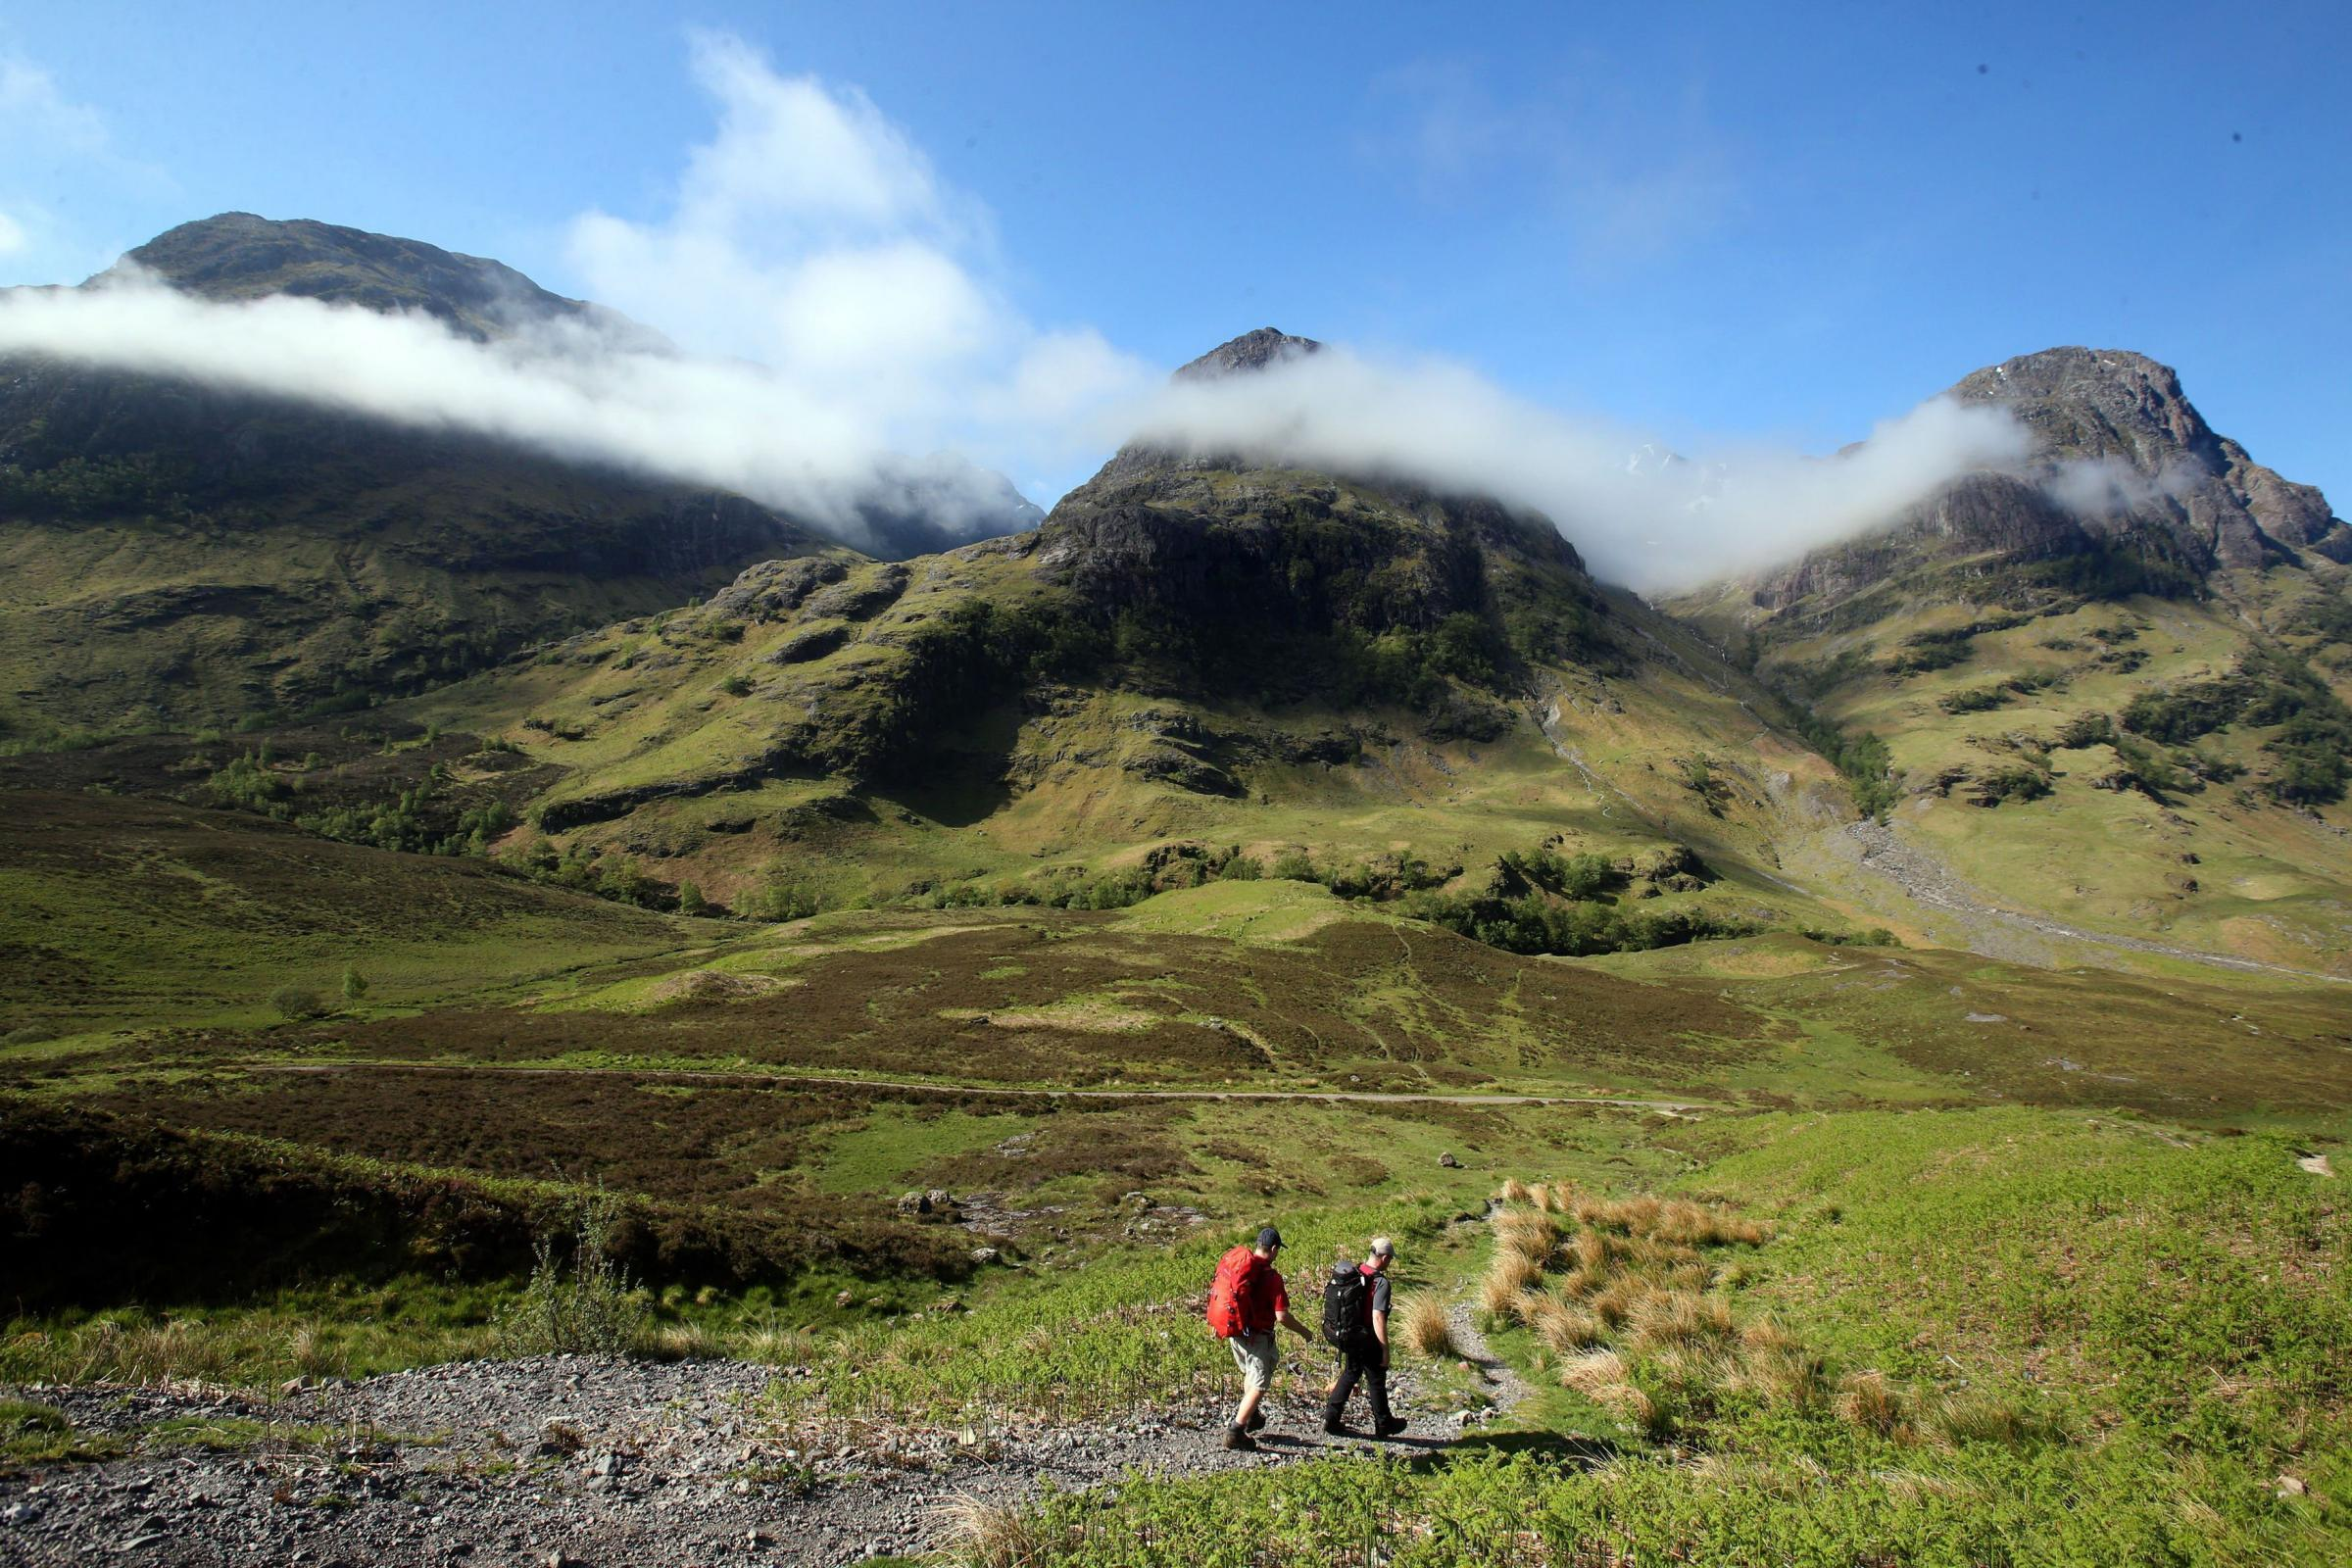 There are 40 locations with National Scenic Area (NSA) status in Scotland, including Glen Coe